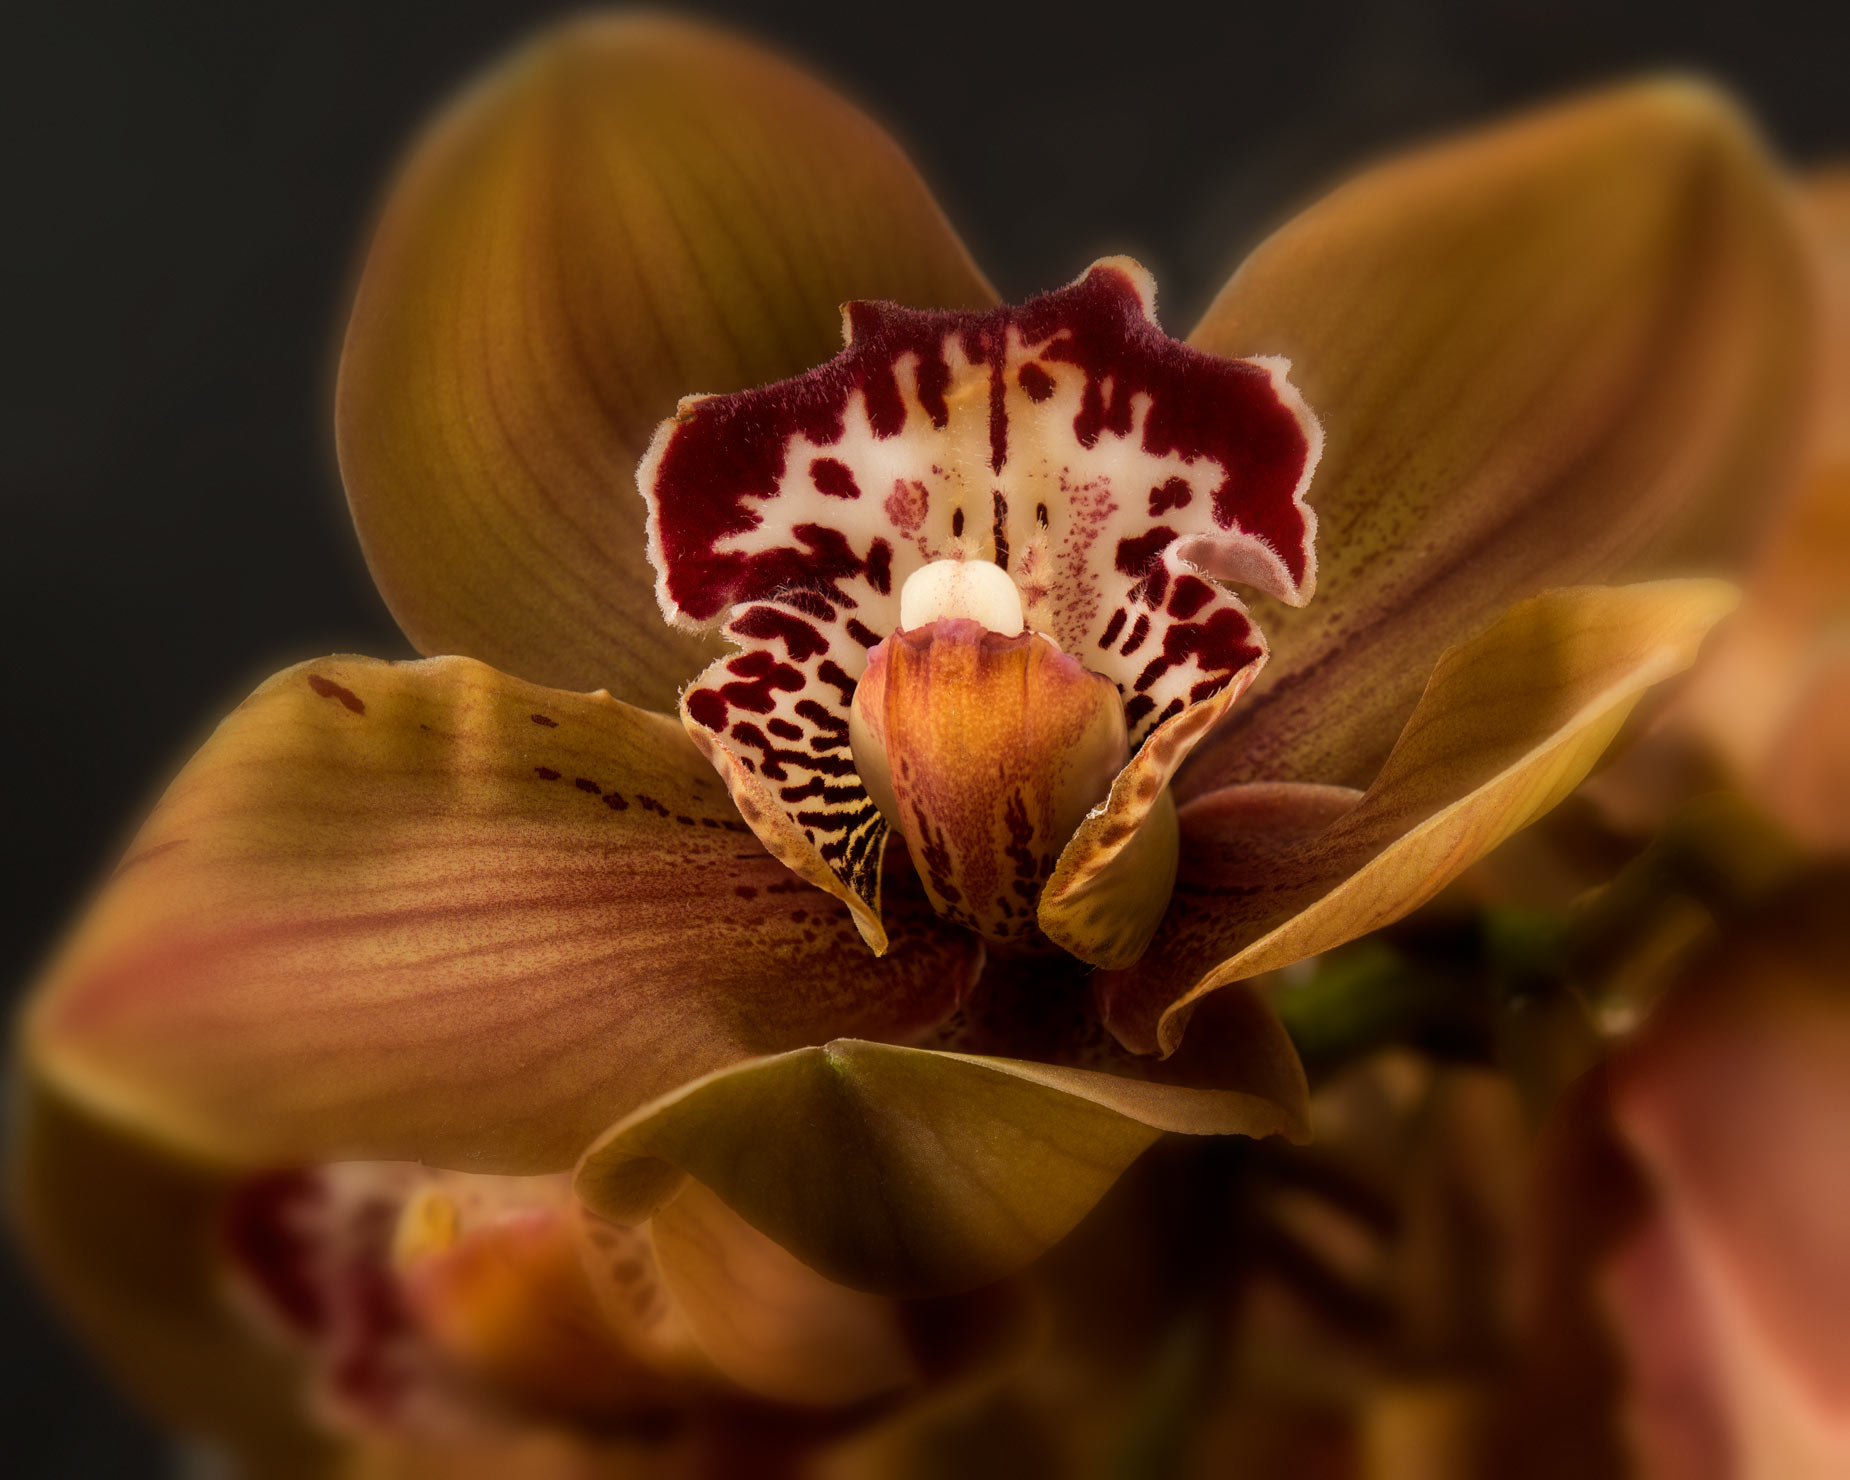 Fine Art Photograph Print vertical orchid focus stacking chocco vignette